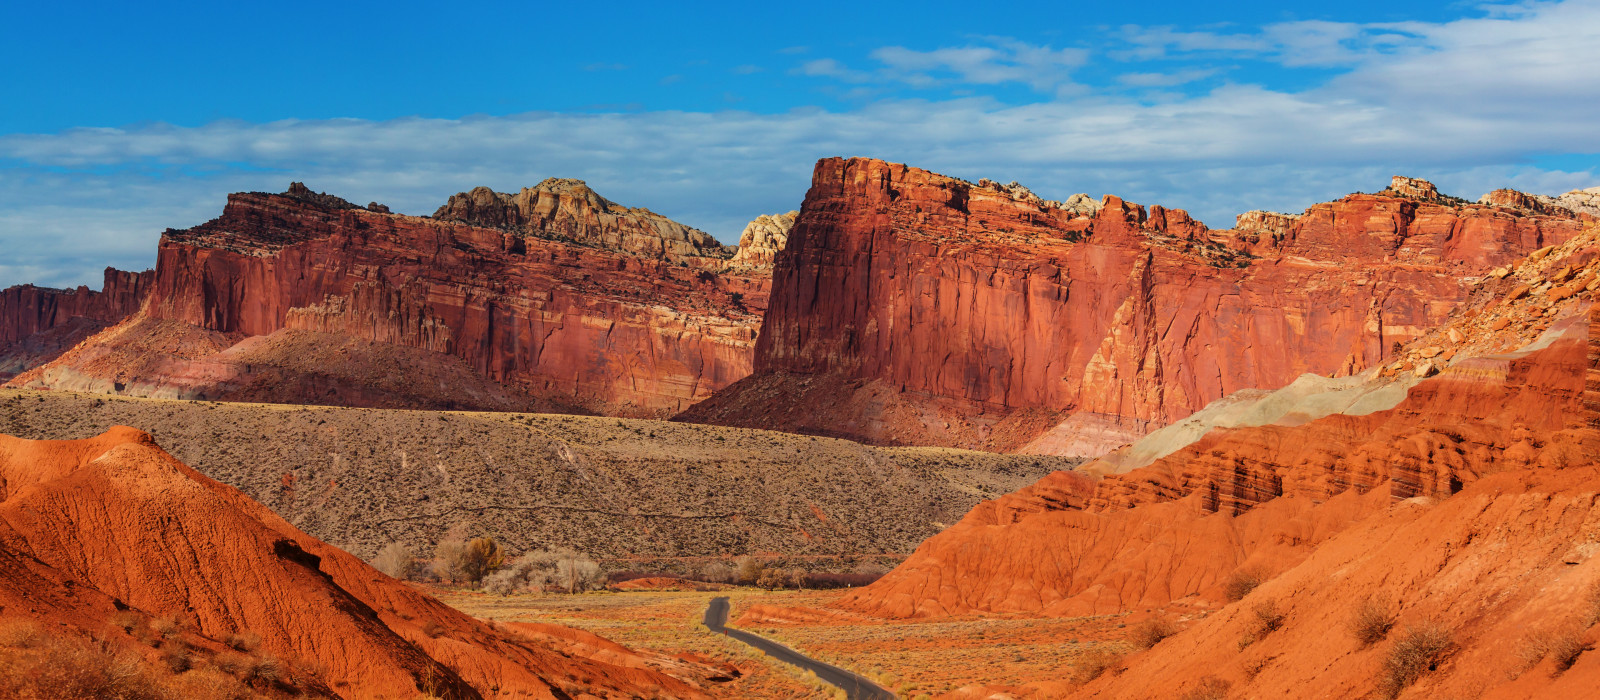 Destination Capitol Reef National Park USA